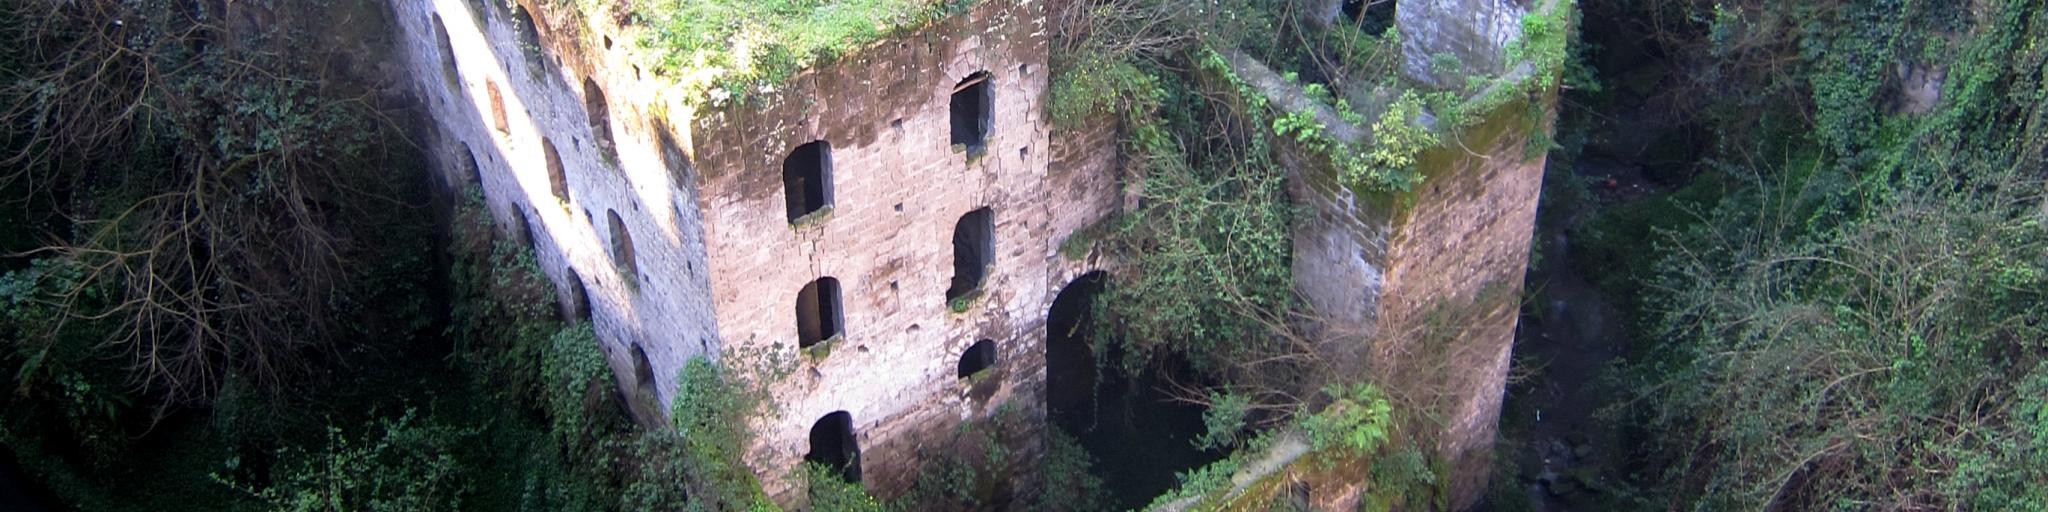 Abandoned buildings are overgrown by greenery in the Valley of the Mills